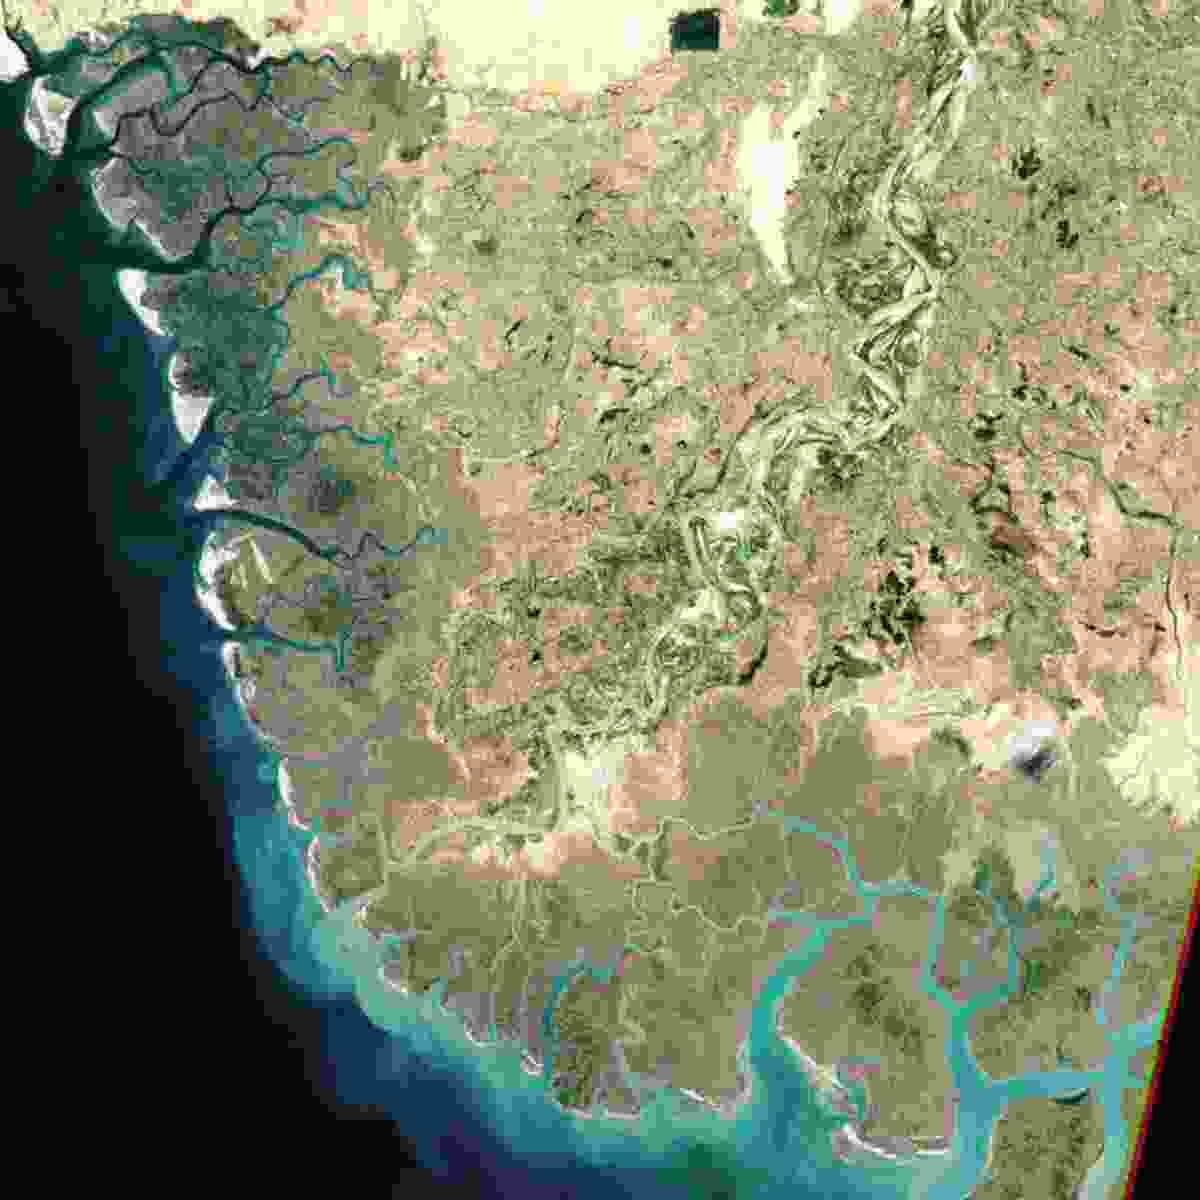 Indus River Delta, Pakistan (NASA Goddard Space Flight Centre and U.S. Geological Survey)